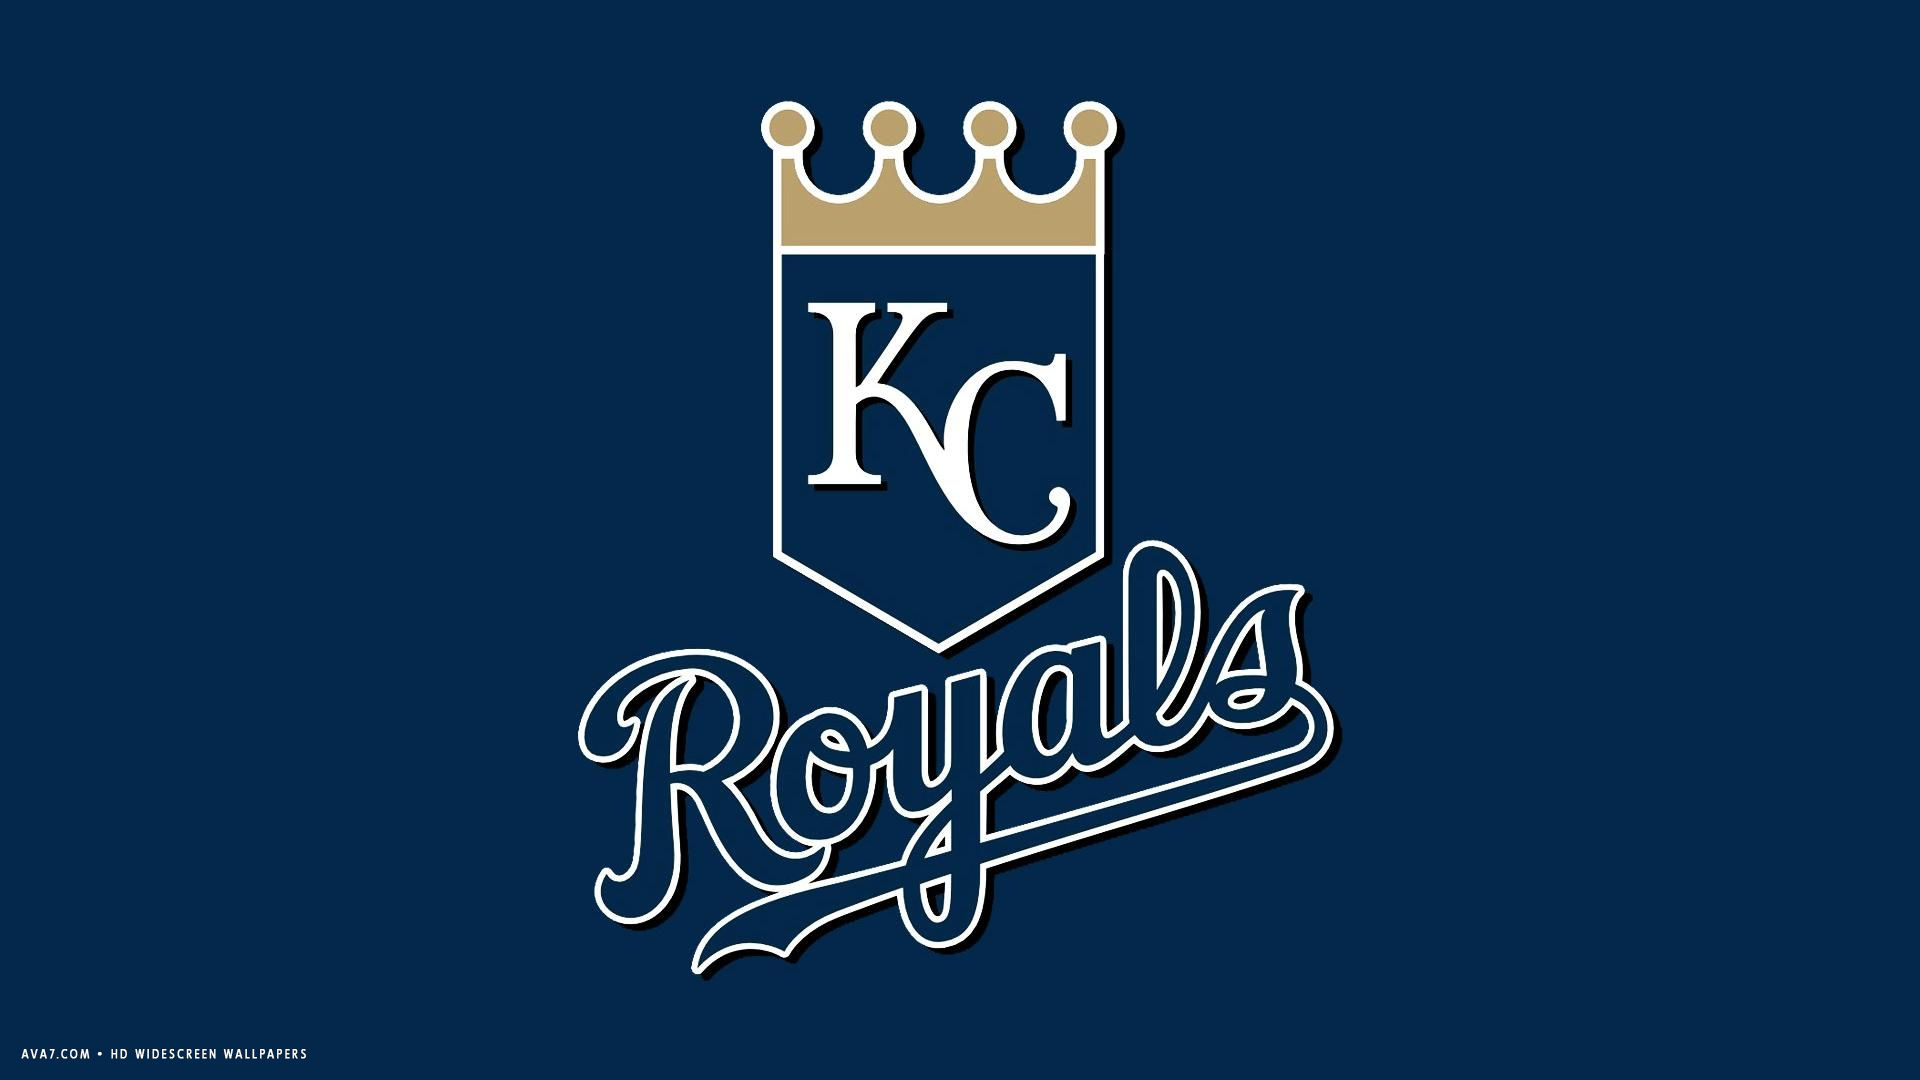 kansas city royals mlb baseball team hd widescreen wallpaper